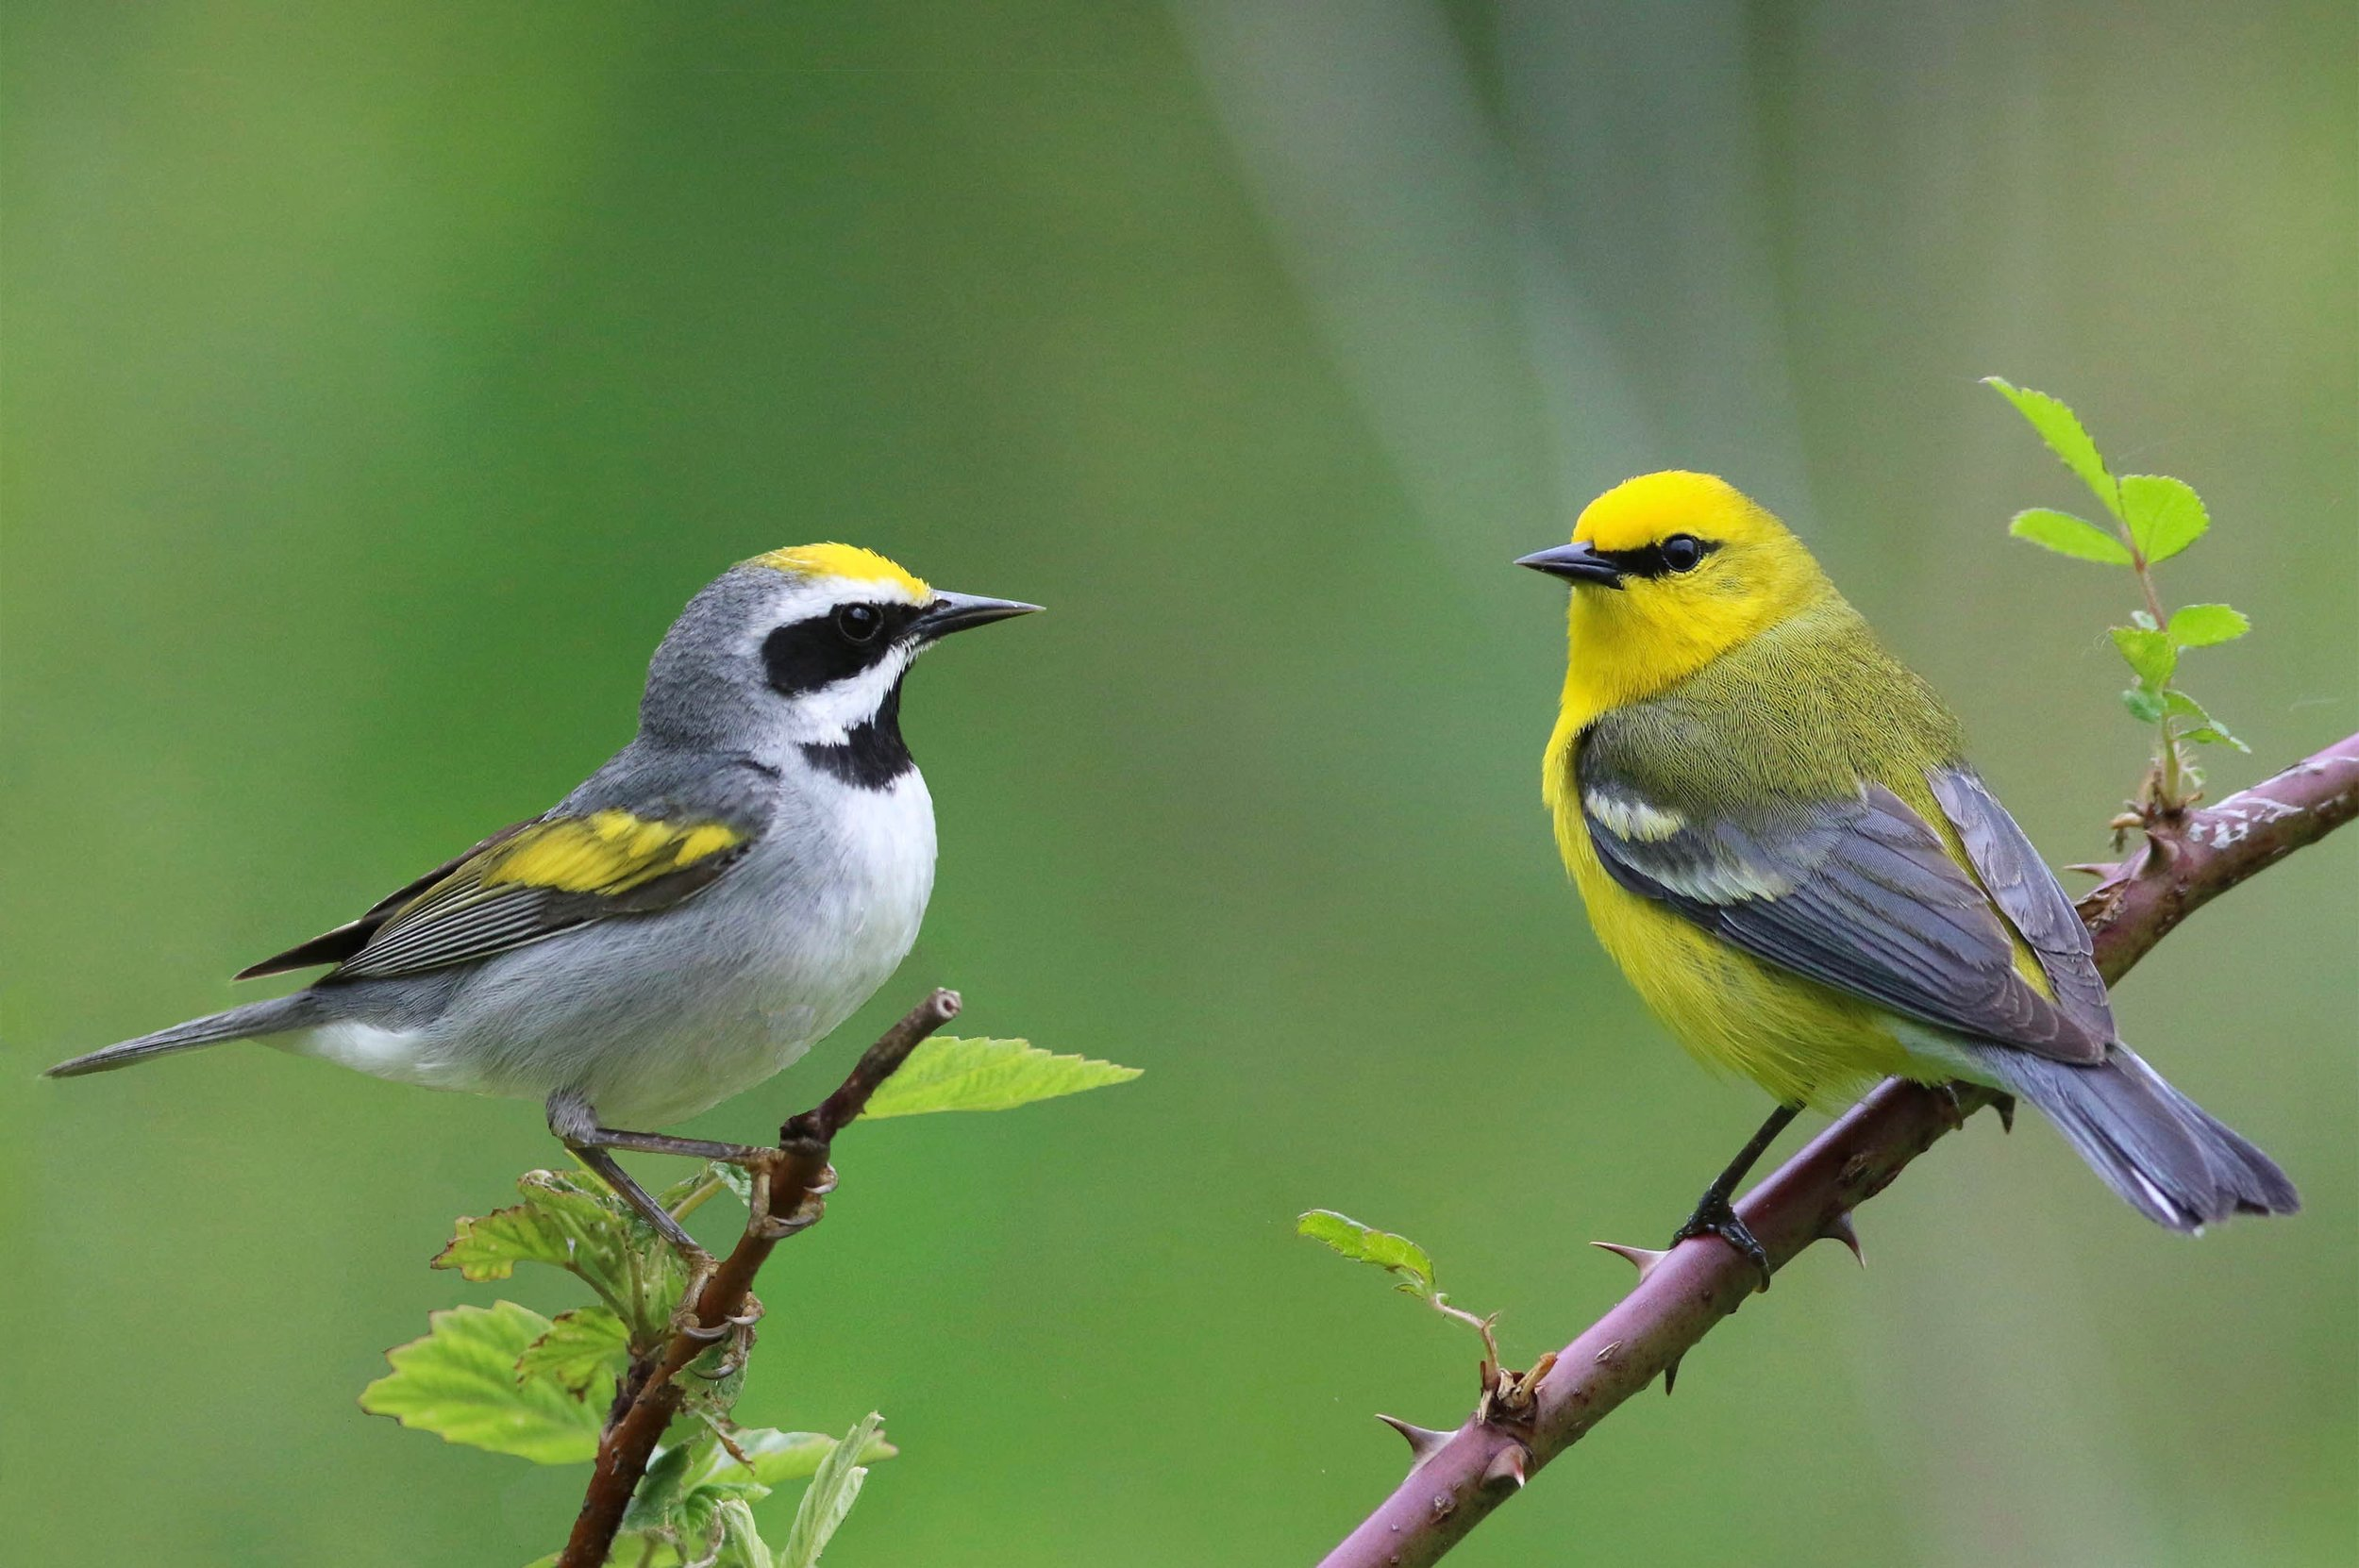 Golden-winged and Blue-winged Warbler   Both crowd favorites, these handsome and competing species are virtually identical genetically. The Blue-winged warbler continues to push the range of the Golden-winged warbler farther northward. Both species are targets on the Michigan Photo Journey.